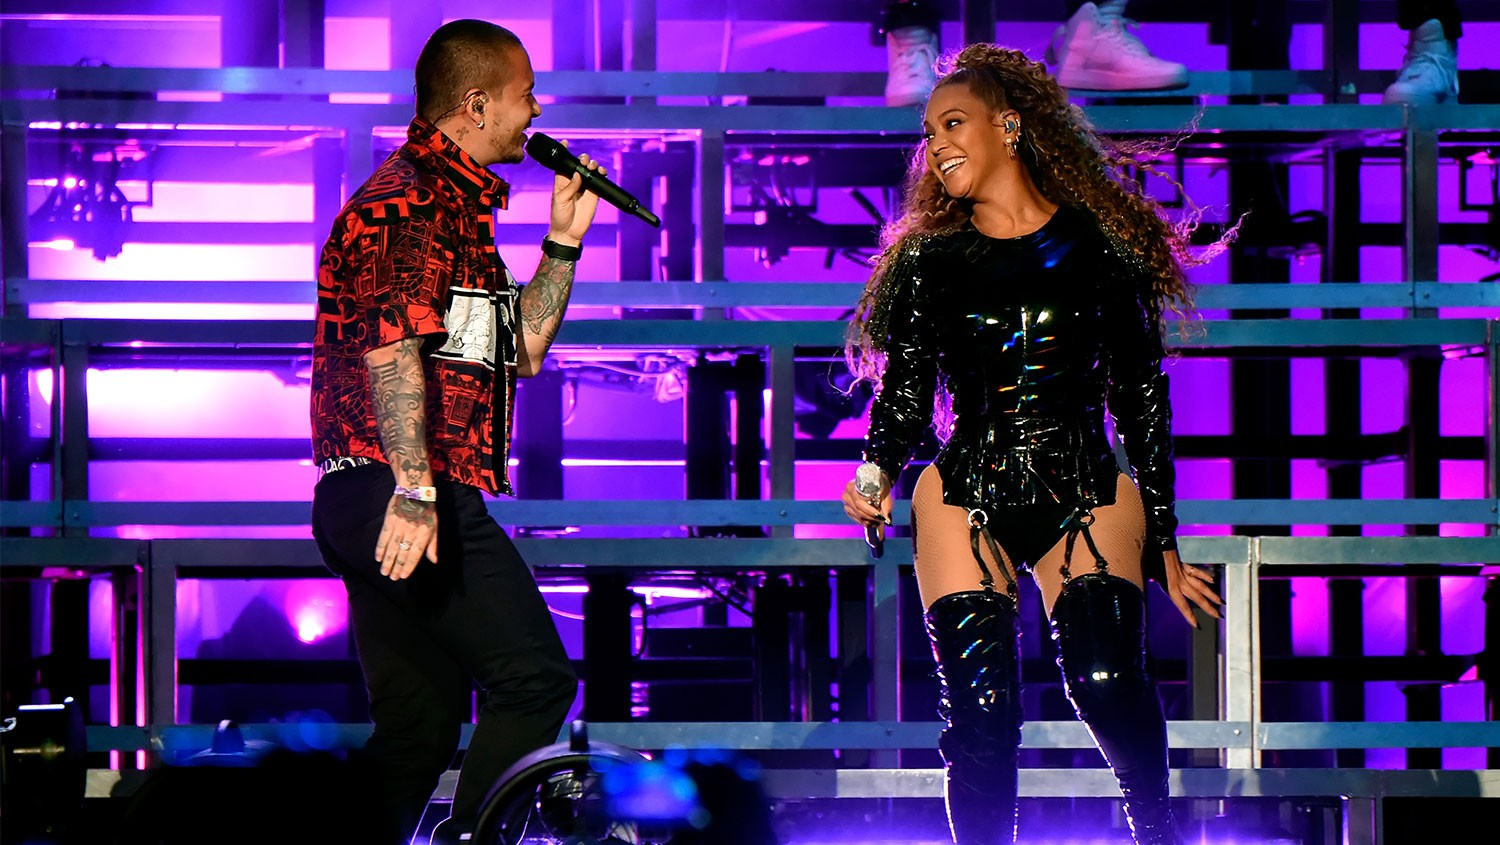 J Balvin and Beyonce Knowles